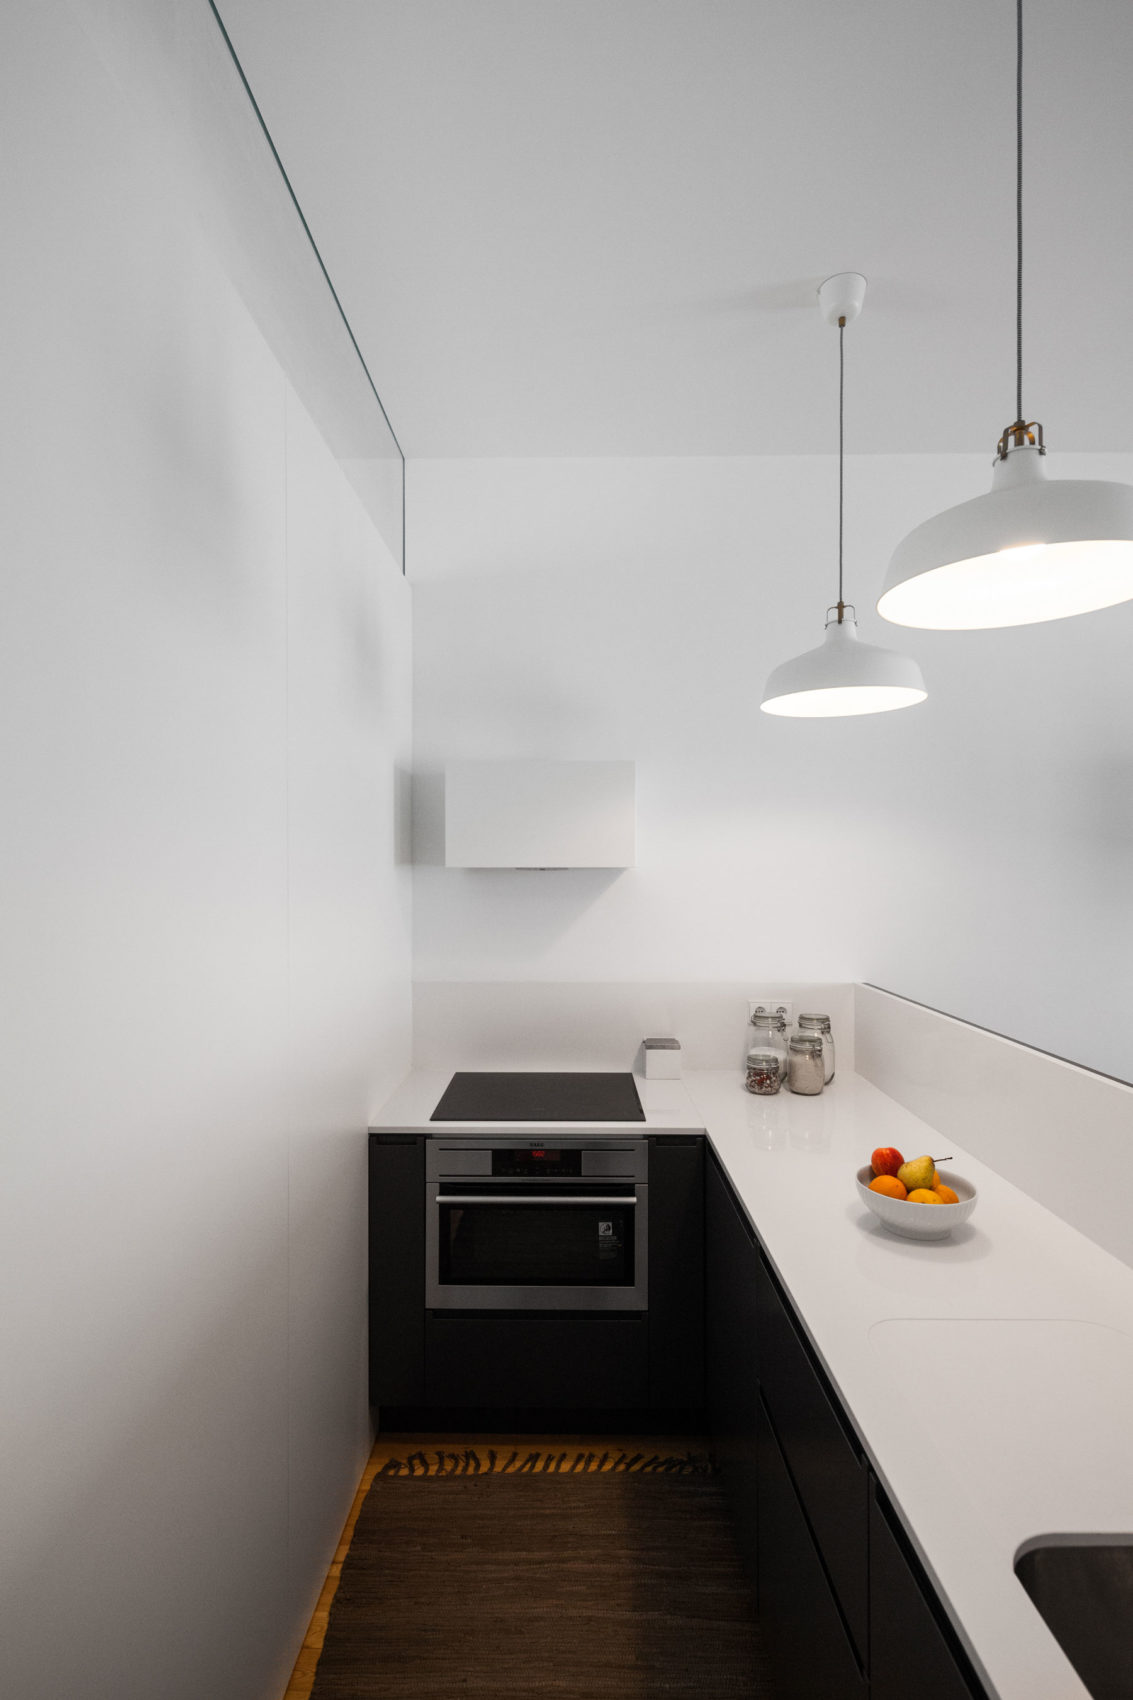 Apartment B9 by Filipe Melo Oliveira (8)